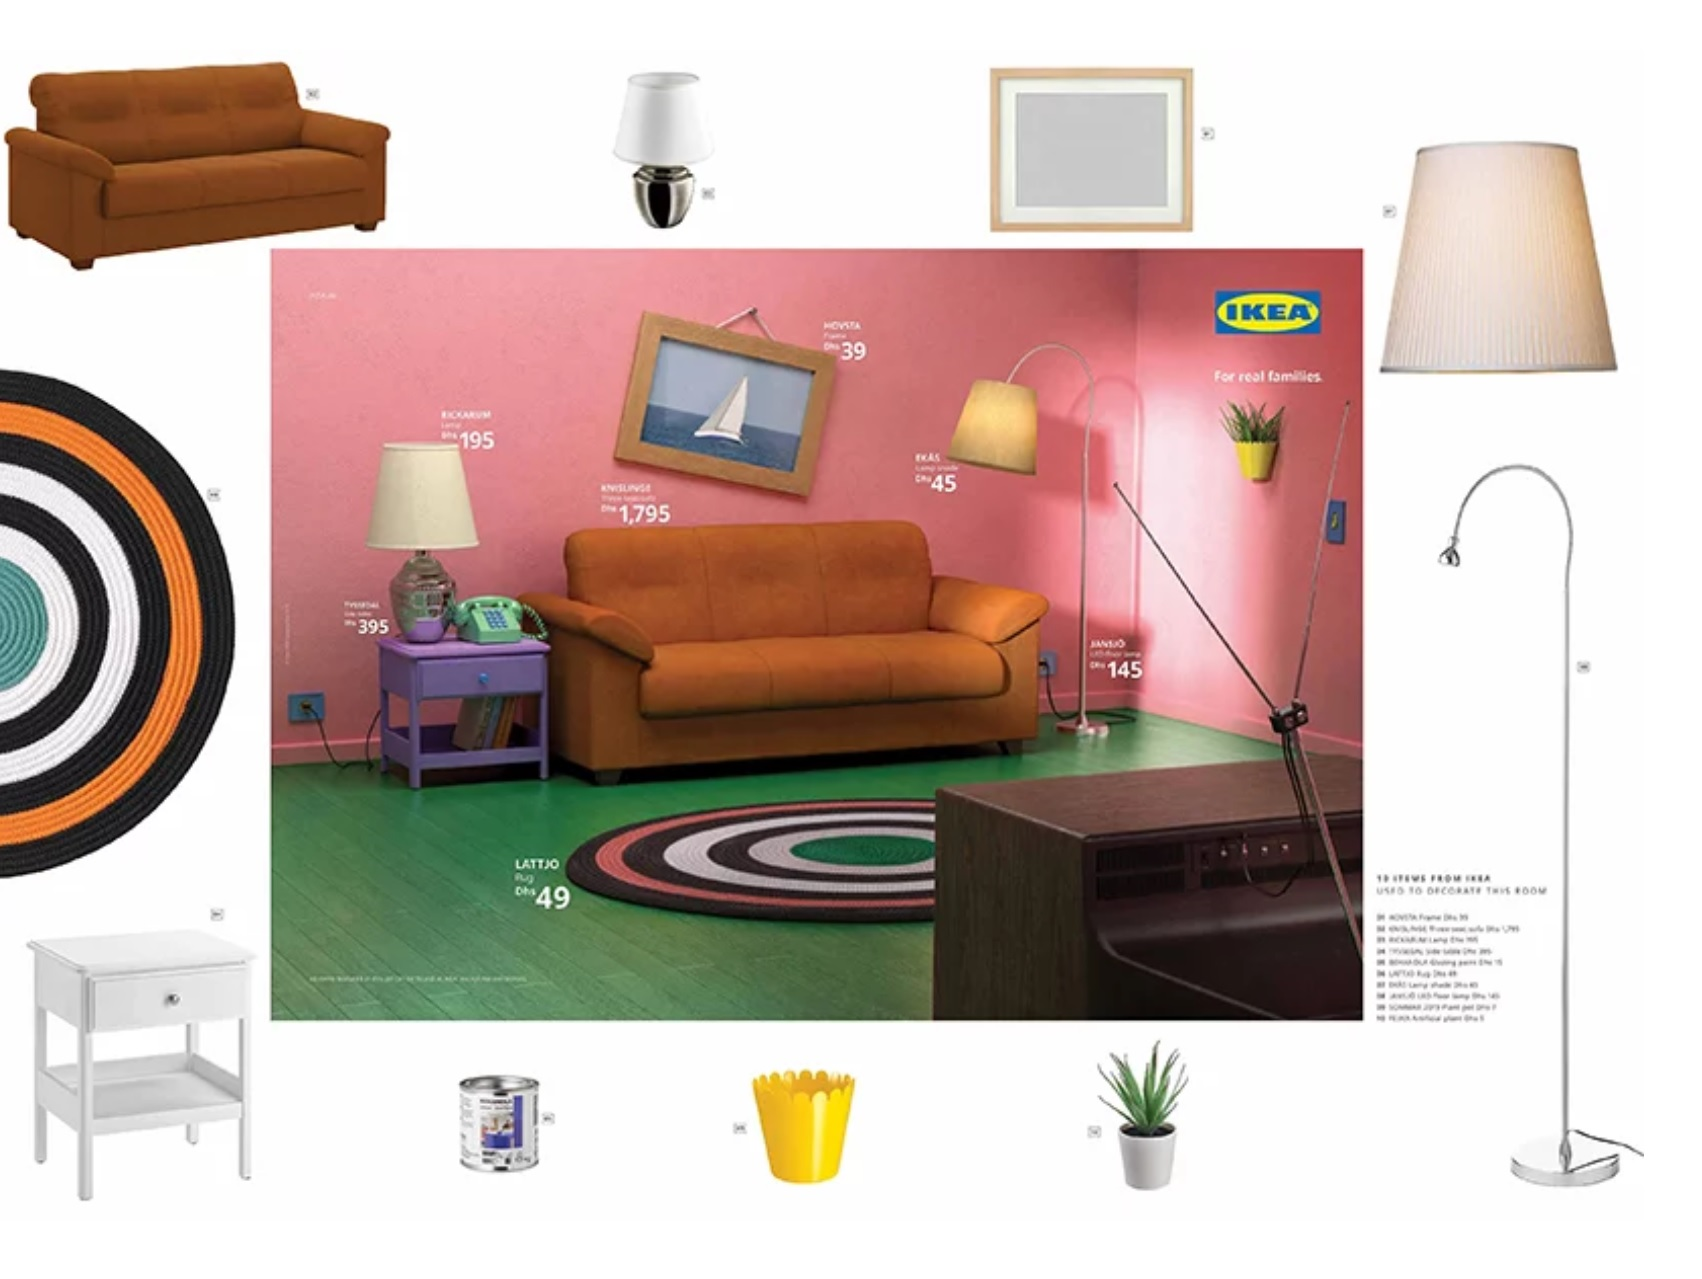 IKEA Simpsons-Friends furniture (4)